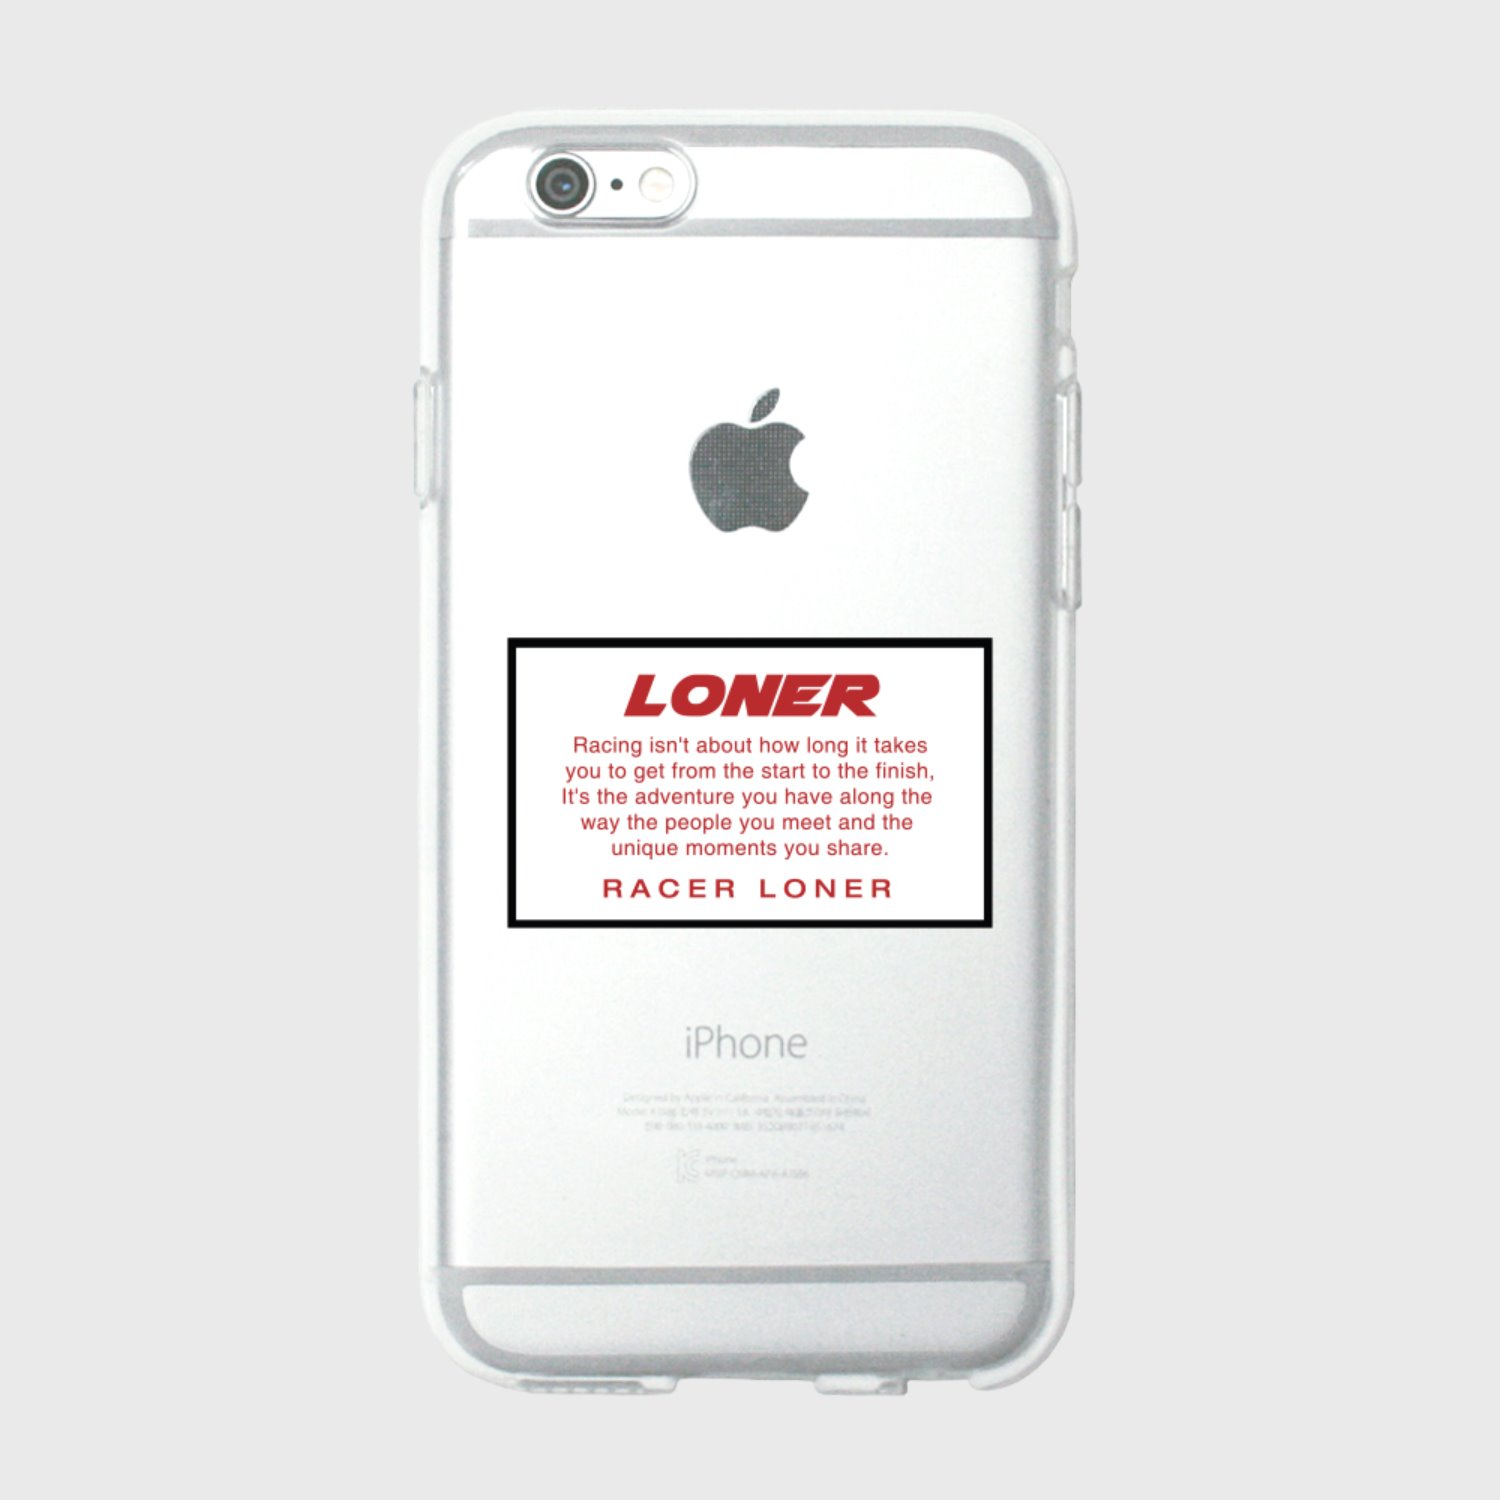 Racer loner-white(jelly case) (기간한정 09.11 - 09.17)